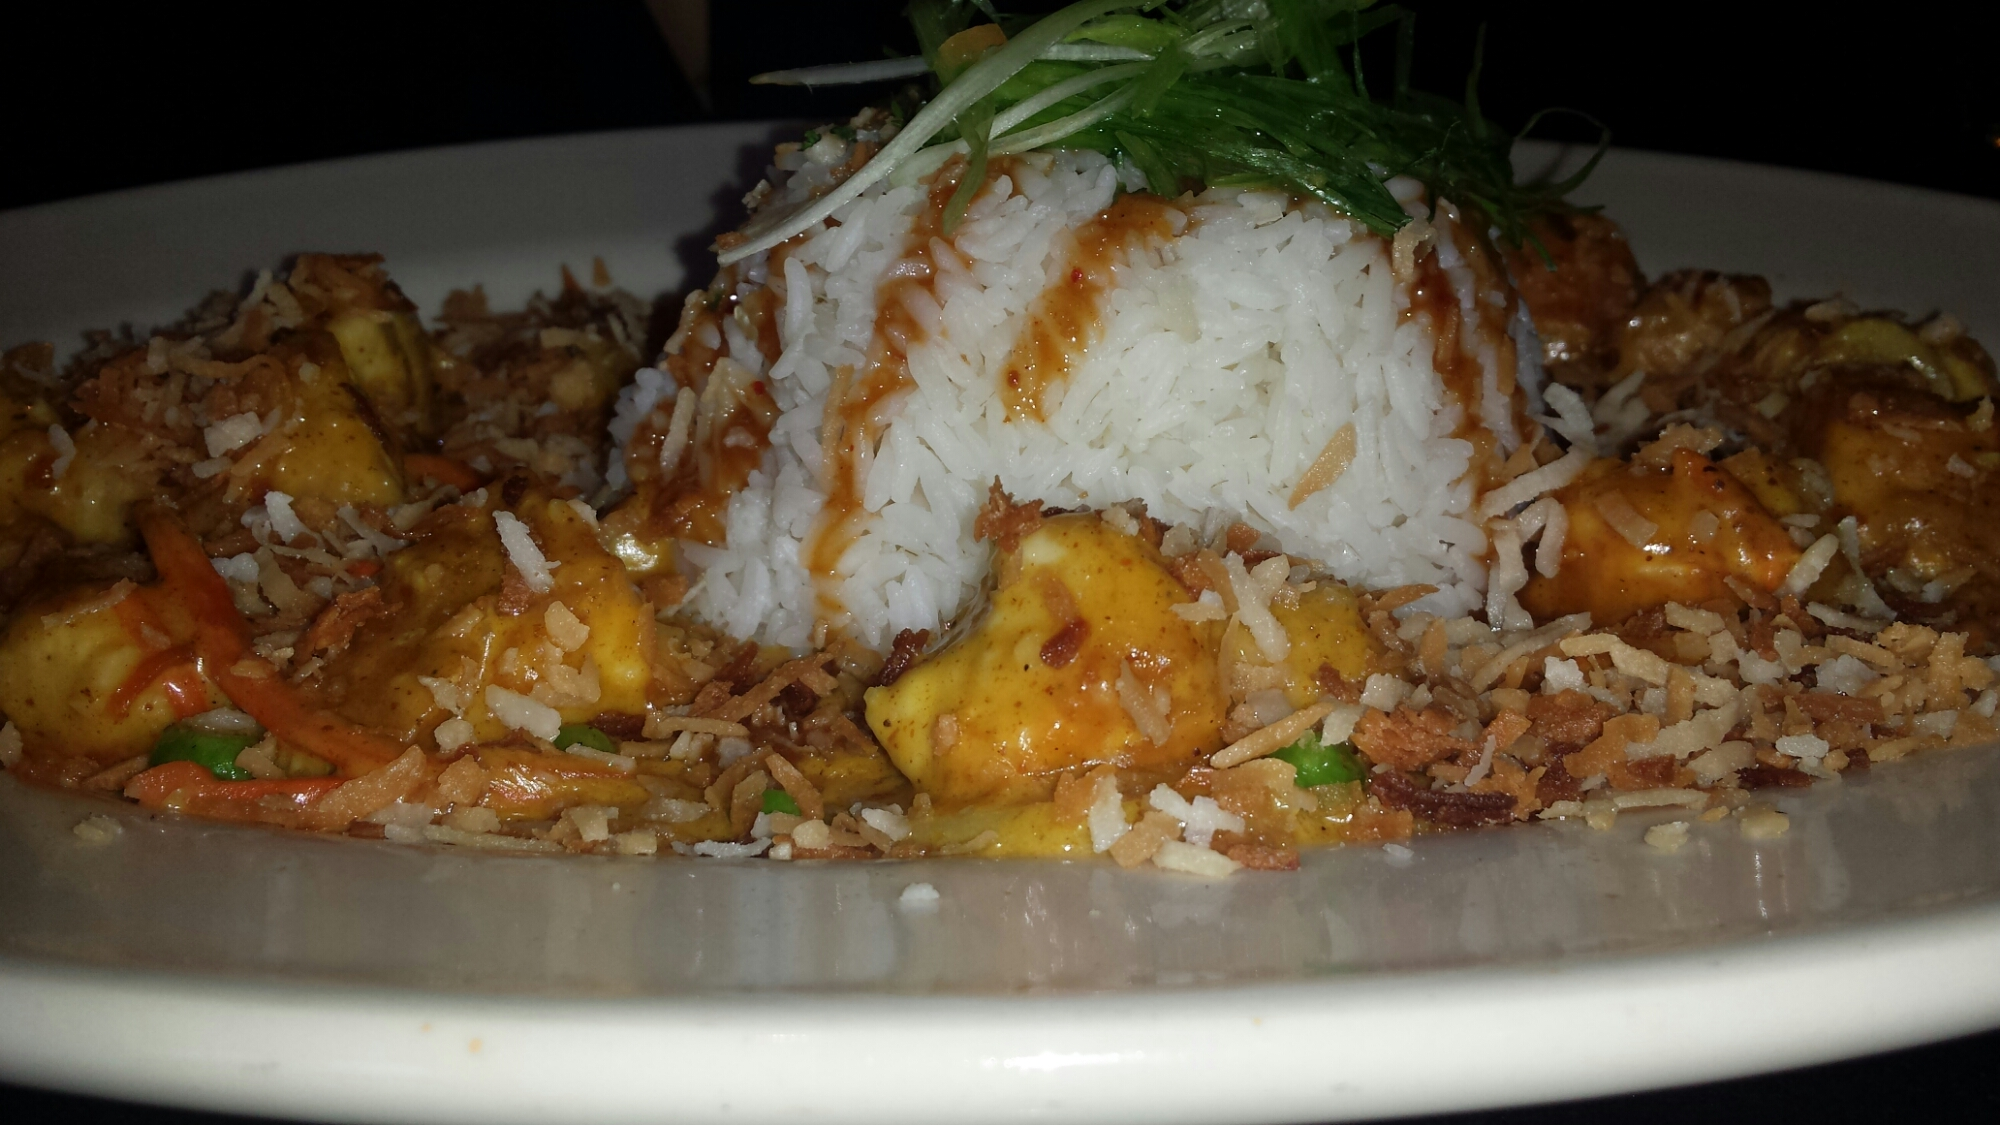 Bang Bang Chicken and Shrimp - A Spicy Thai Dish with the Flavors of Curry, Peanut, Chile and Coconut. Sautéed with Vegetables and Served over Steamed White Rice.